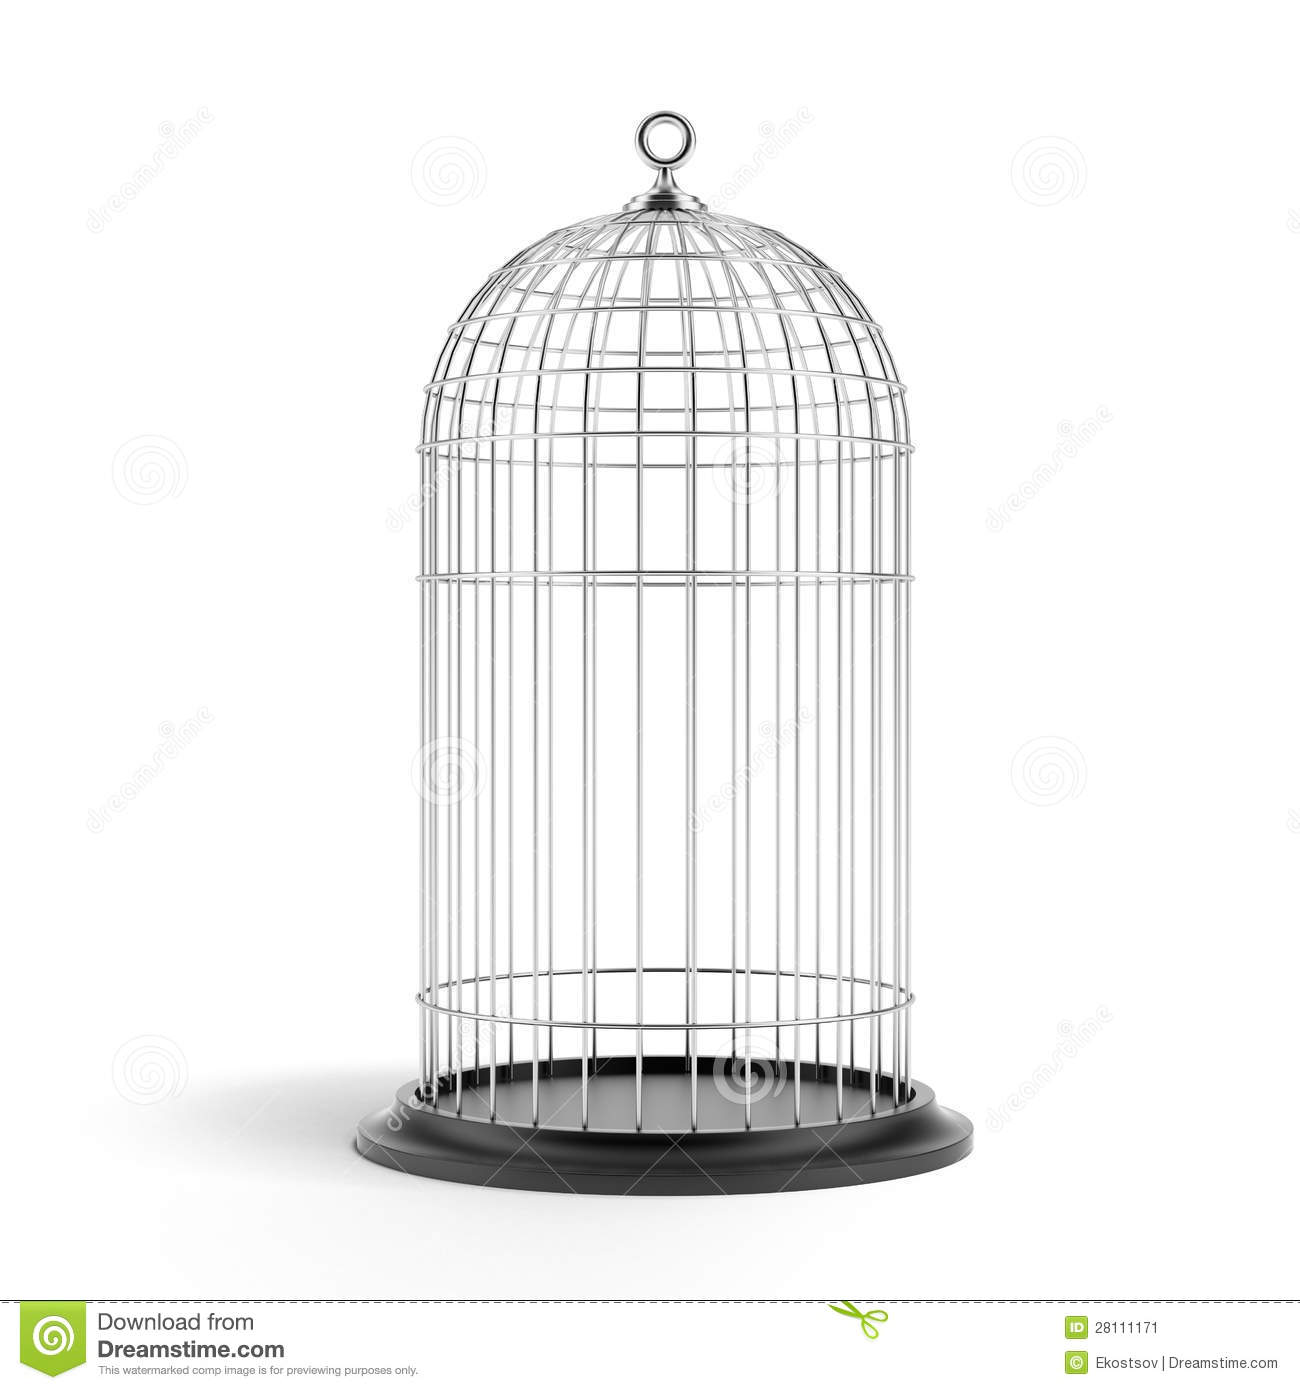 how to clean bird cage with bird inside